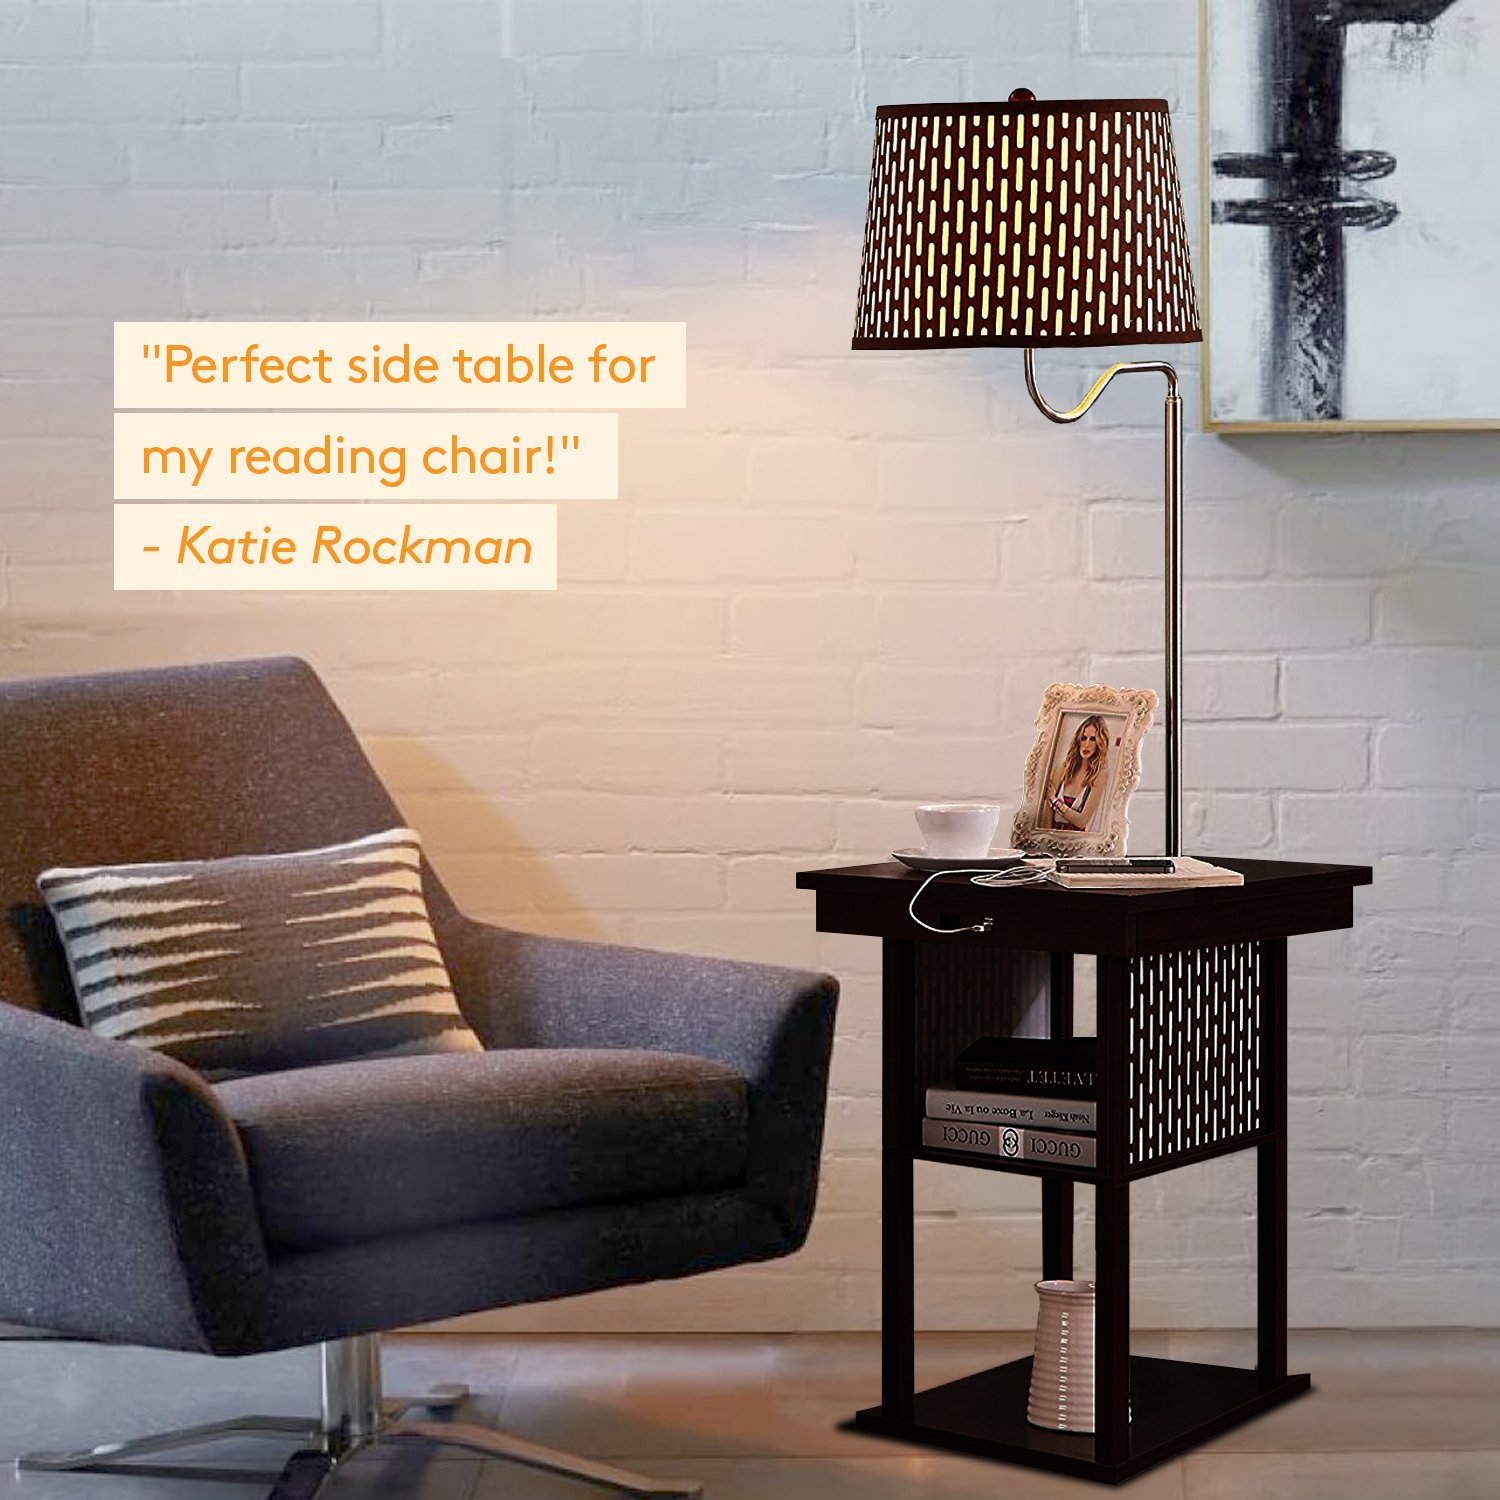 Brightech Madison - Mid Century Modern Nightstand, Shelves & USB Port Combination - Bedside Table with LED Floor Lamp Attached - End Table for Living Room Sofas - Brown by Brightech (Image #4)